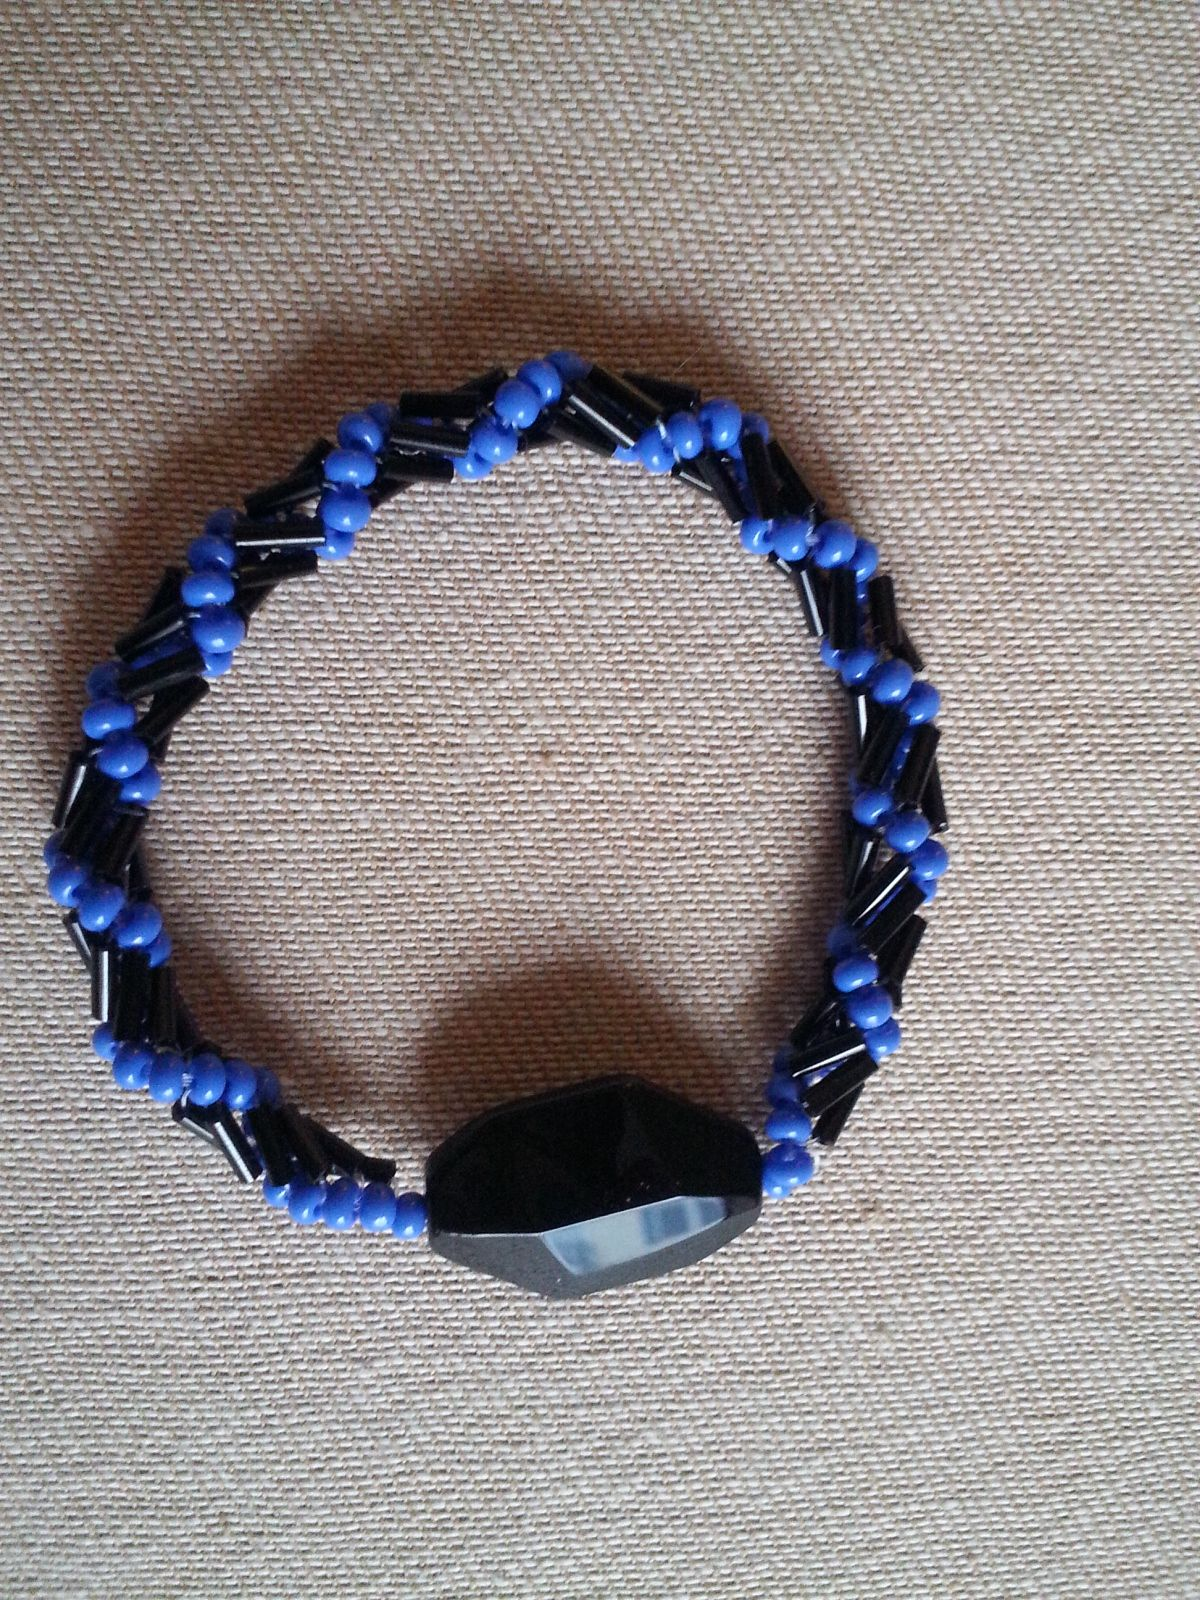 black bugle bead spiral bracelet with bright blue glass beads and large black glass focal bead. The spiral stitch has just enough stretch